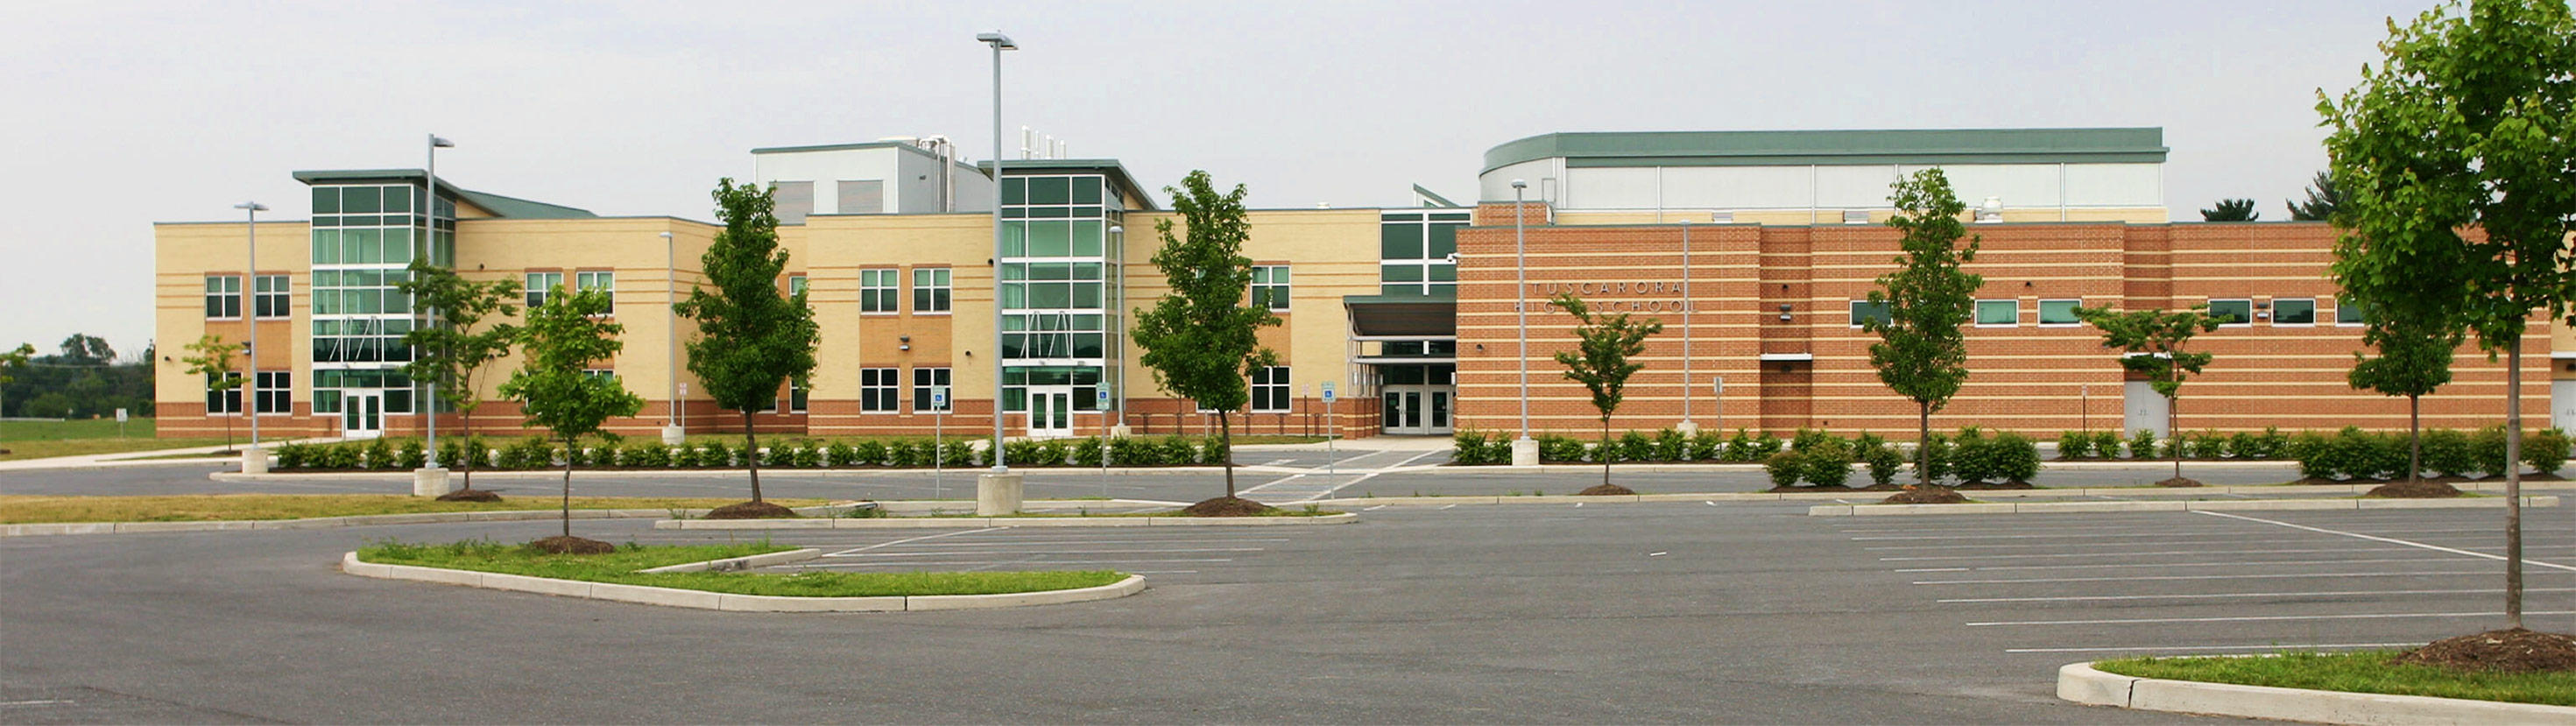 tuscarora-high-school-2